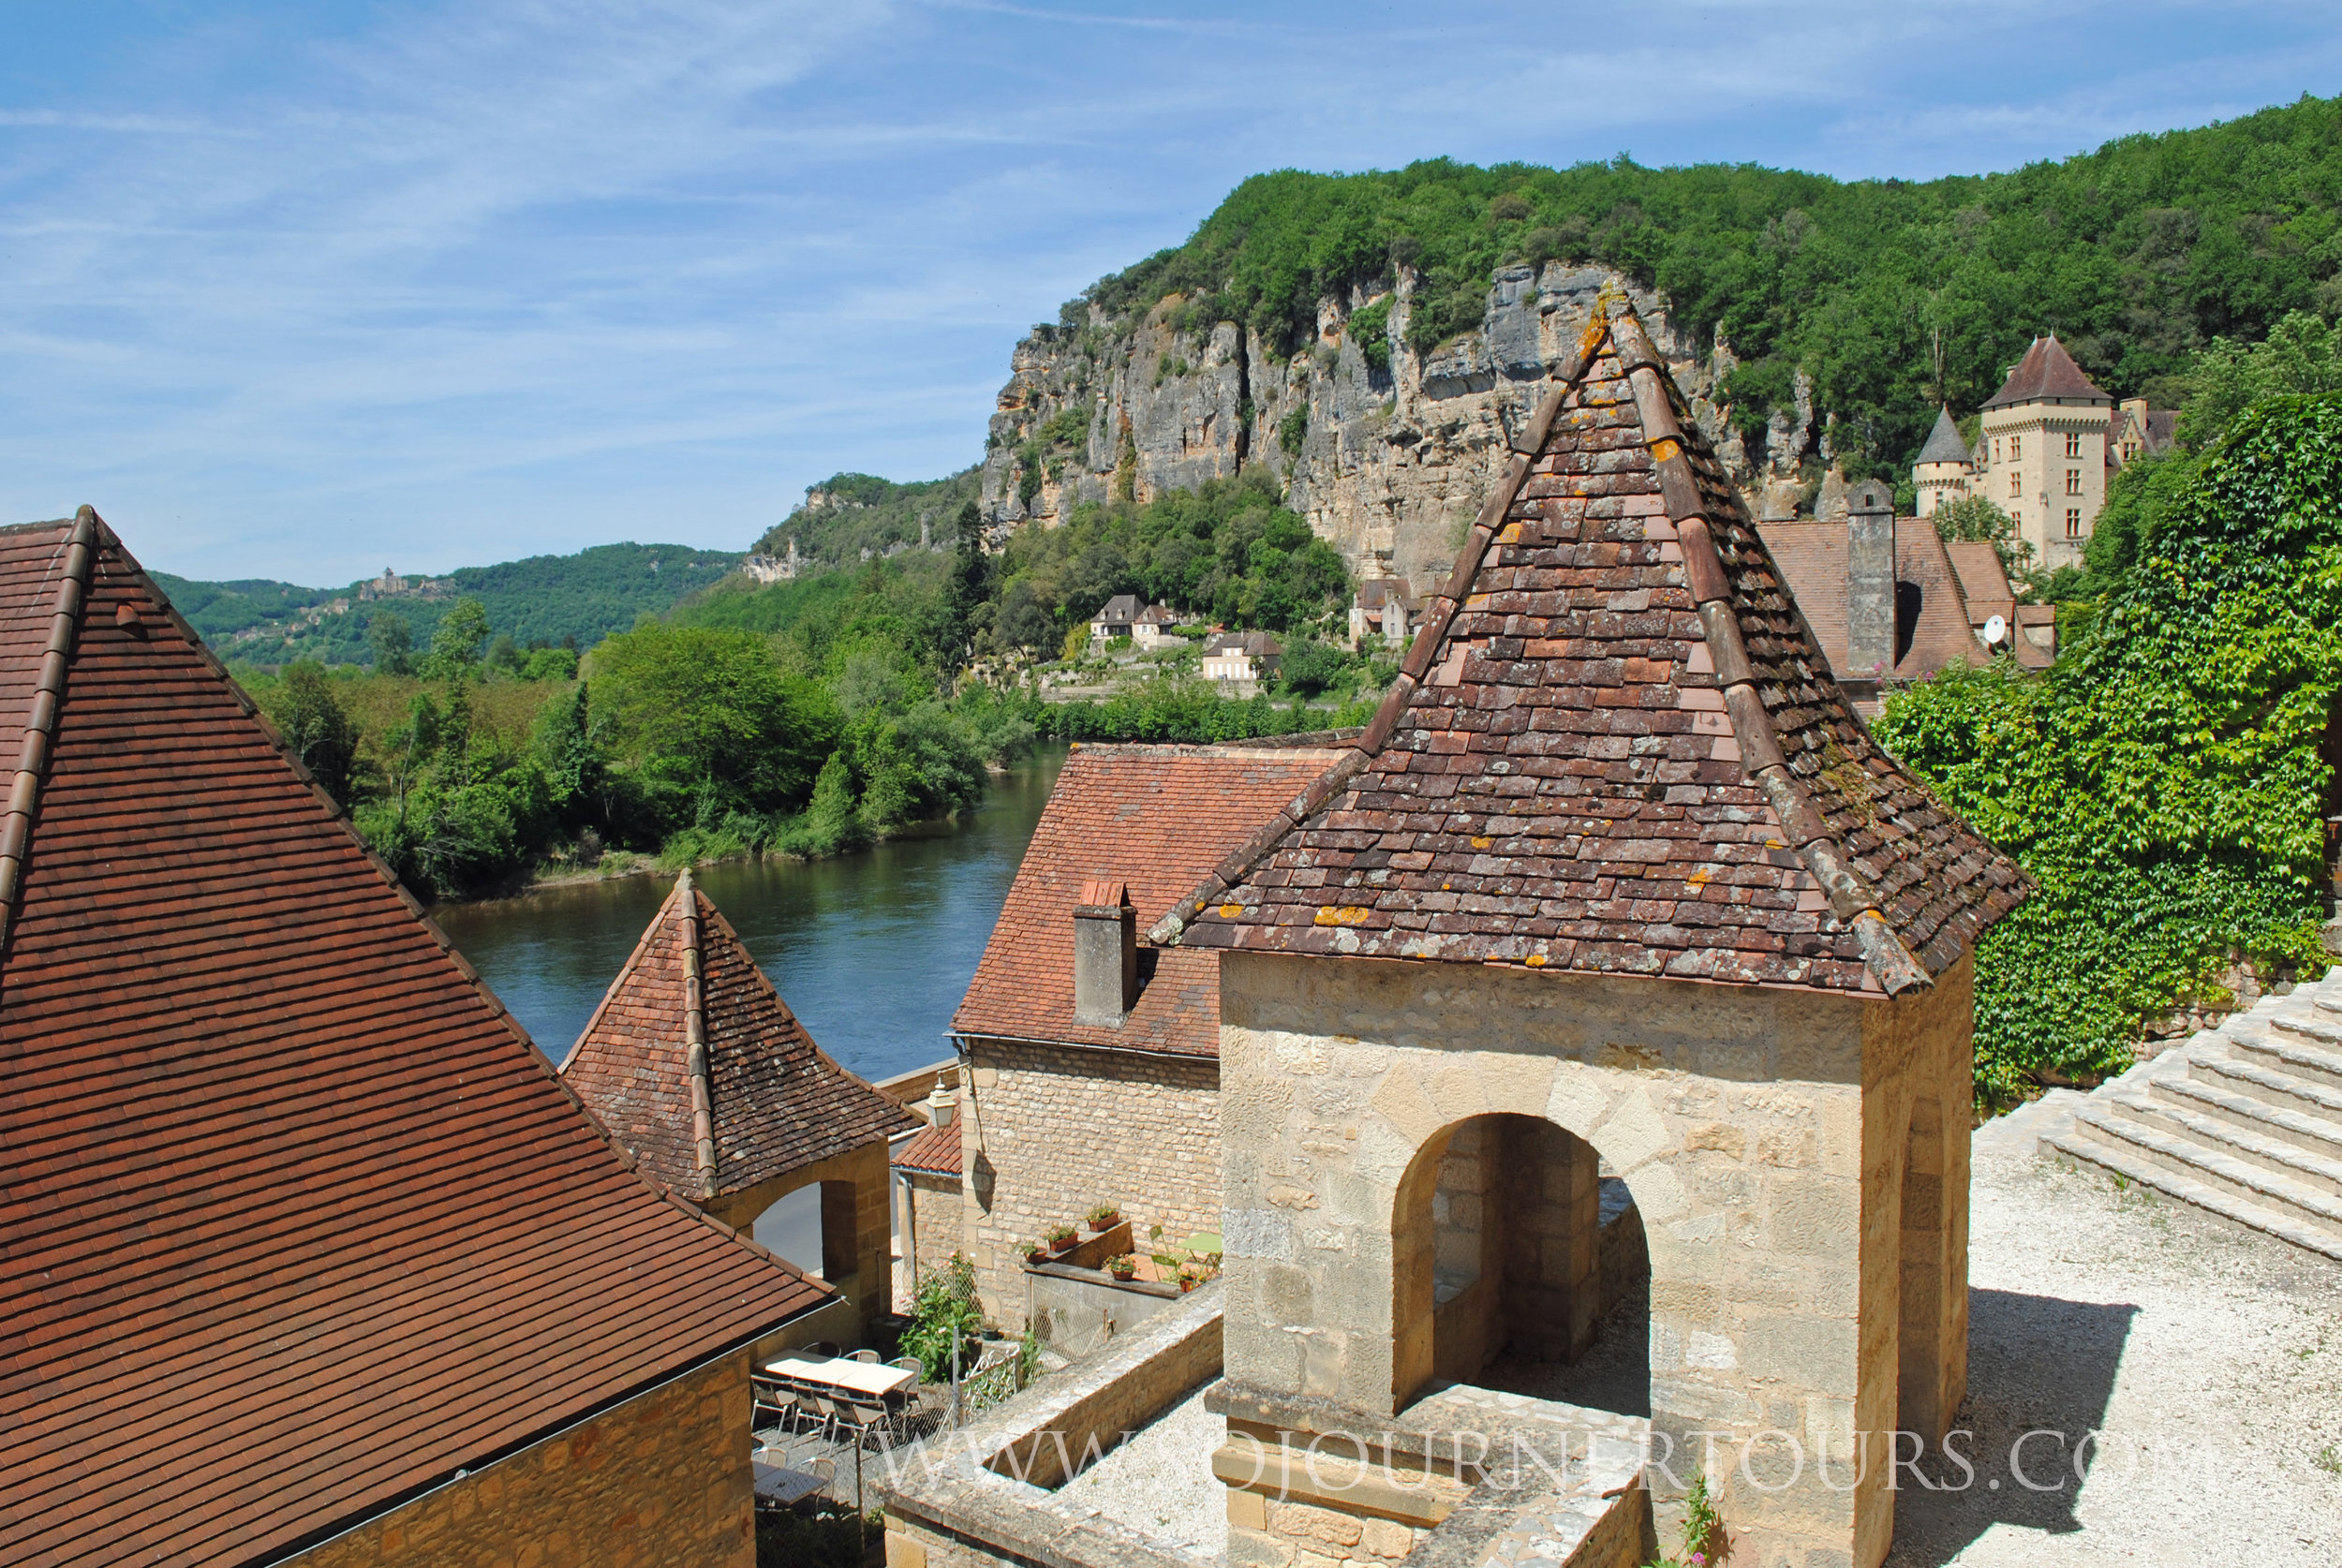 Dordogne FRANCE - (CLICK TO LEARN MORE)